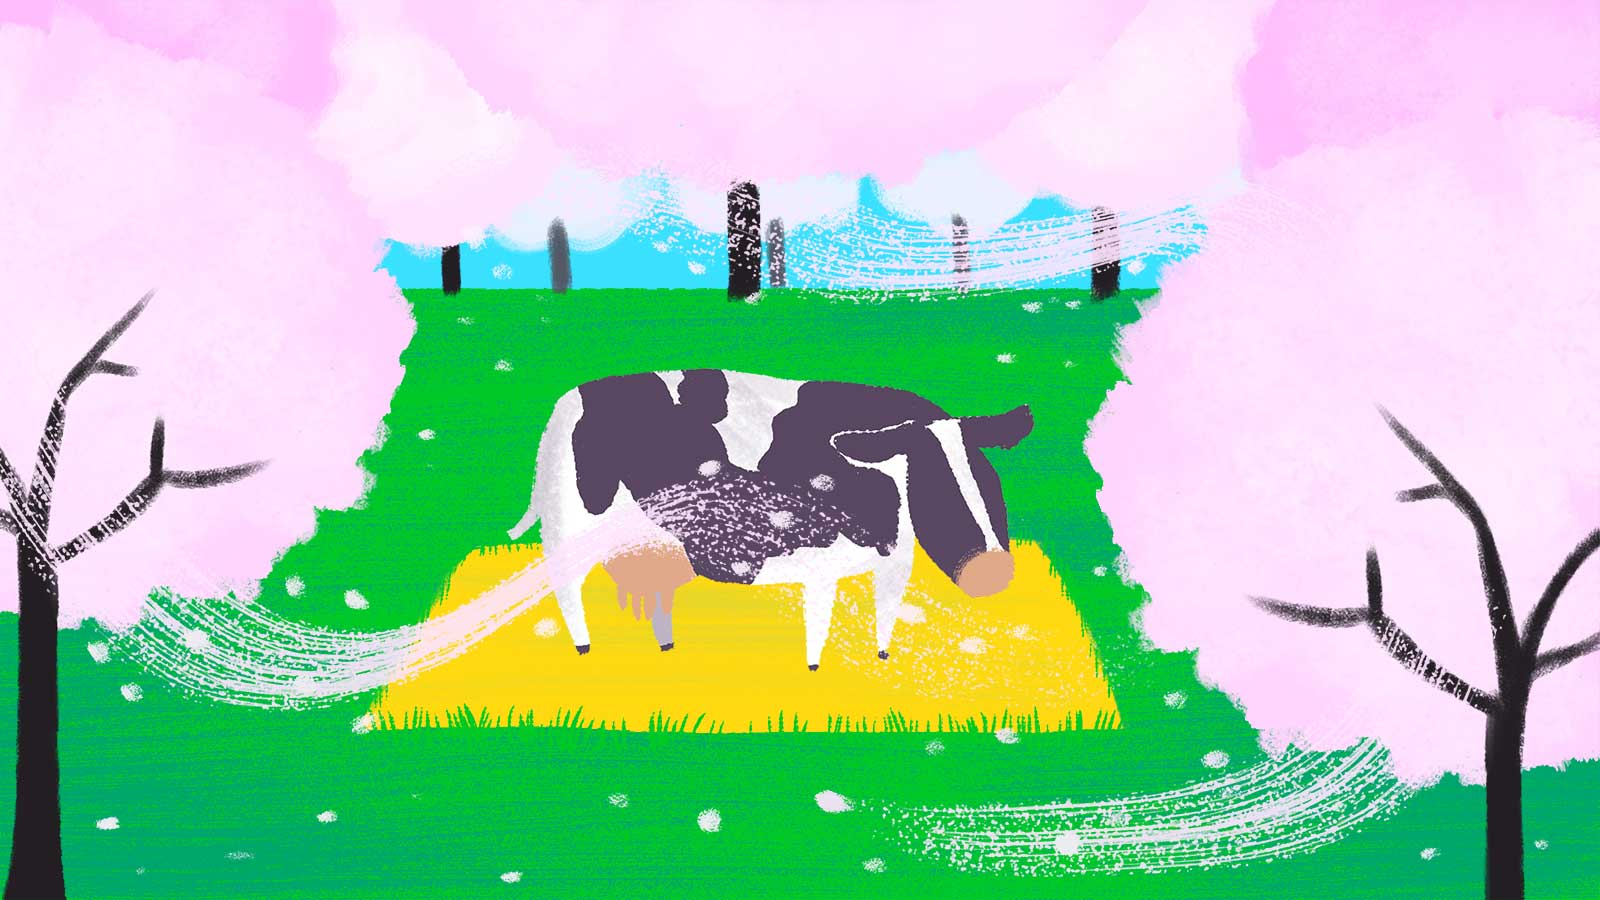 Almond orchard with lone cow